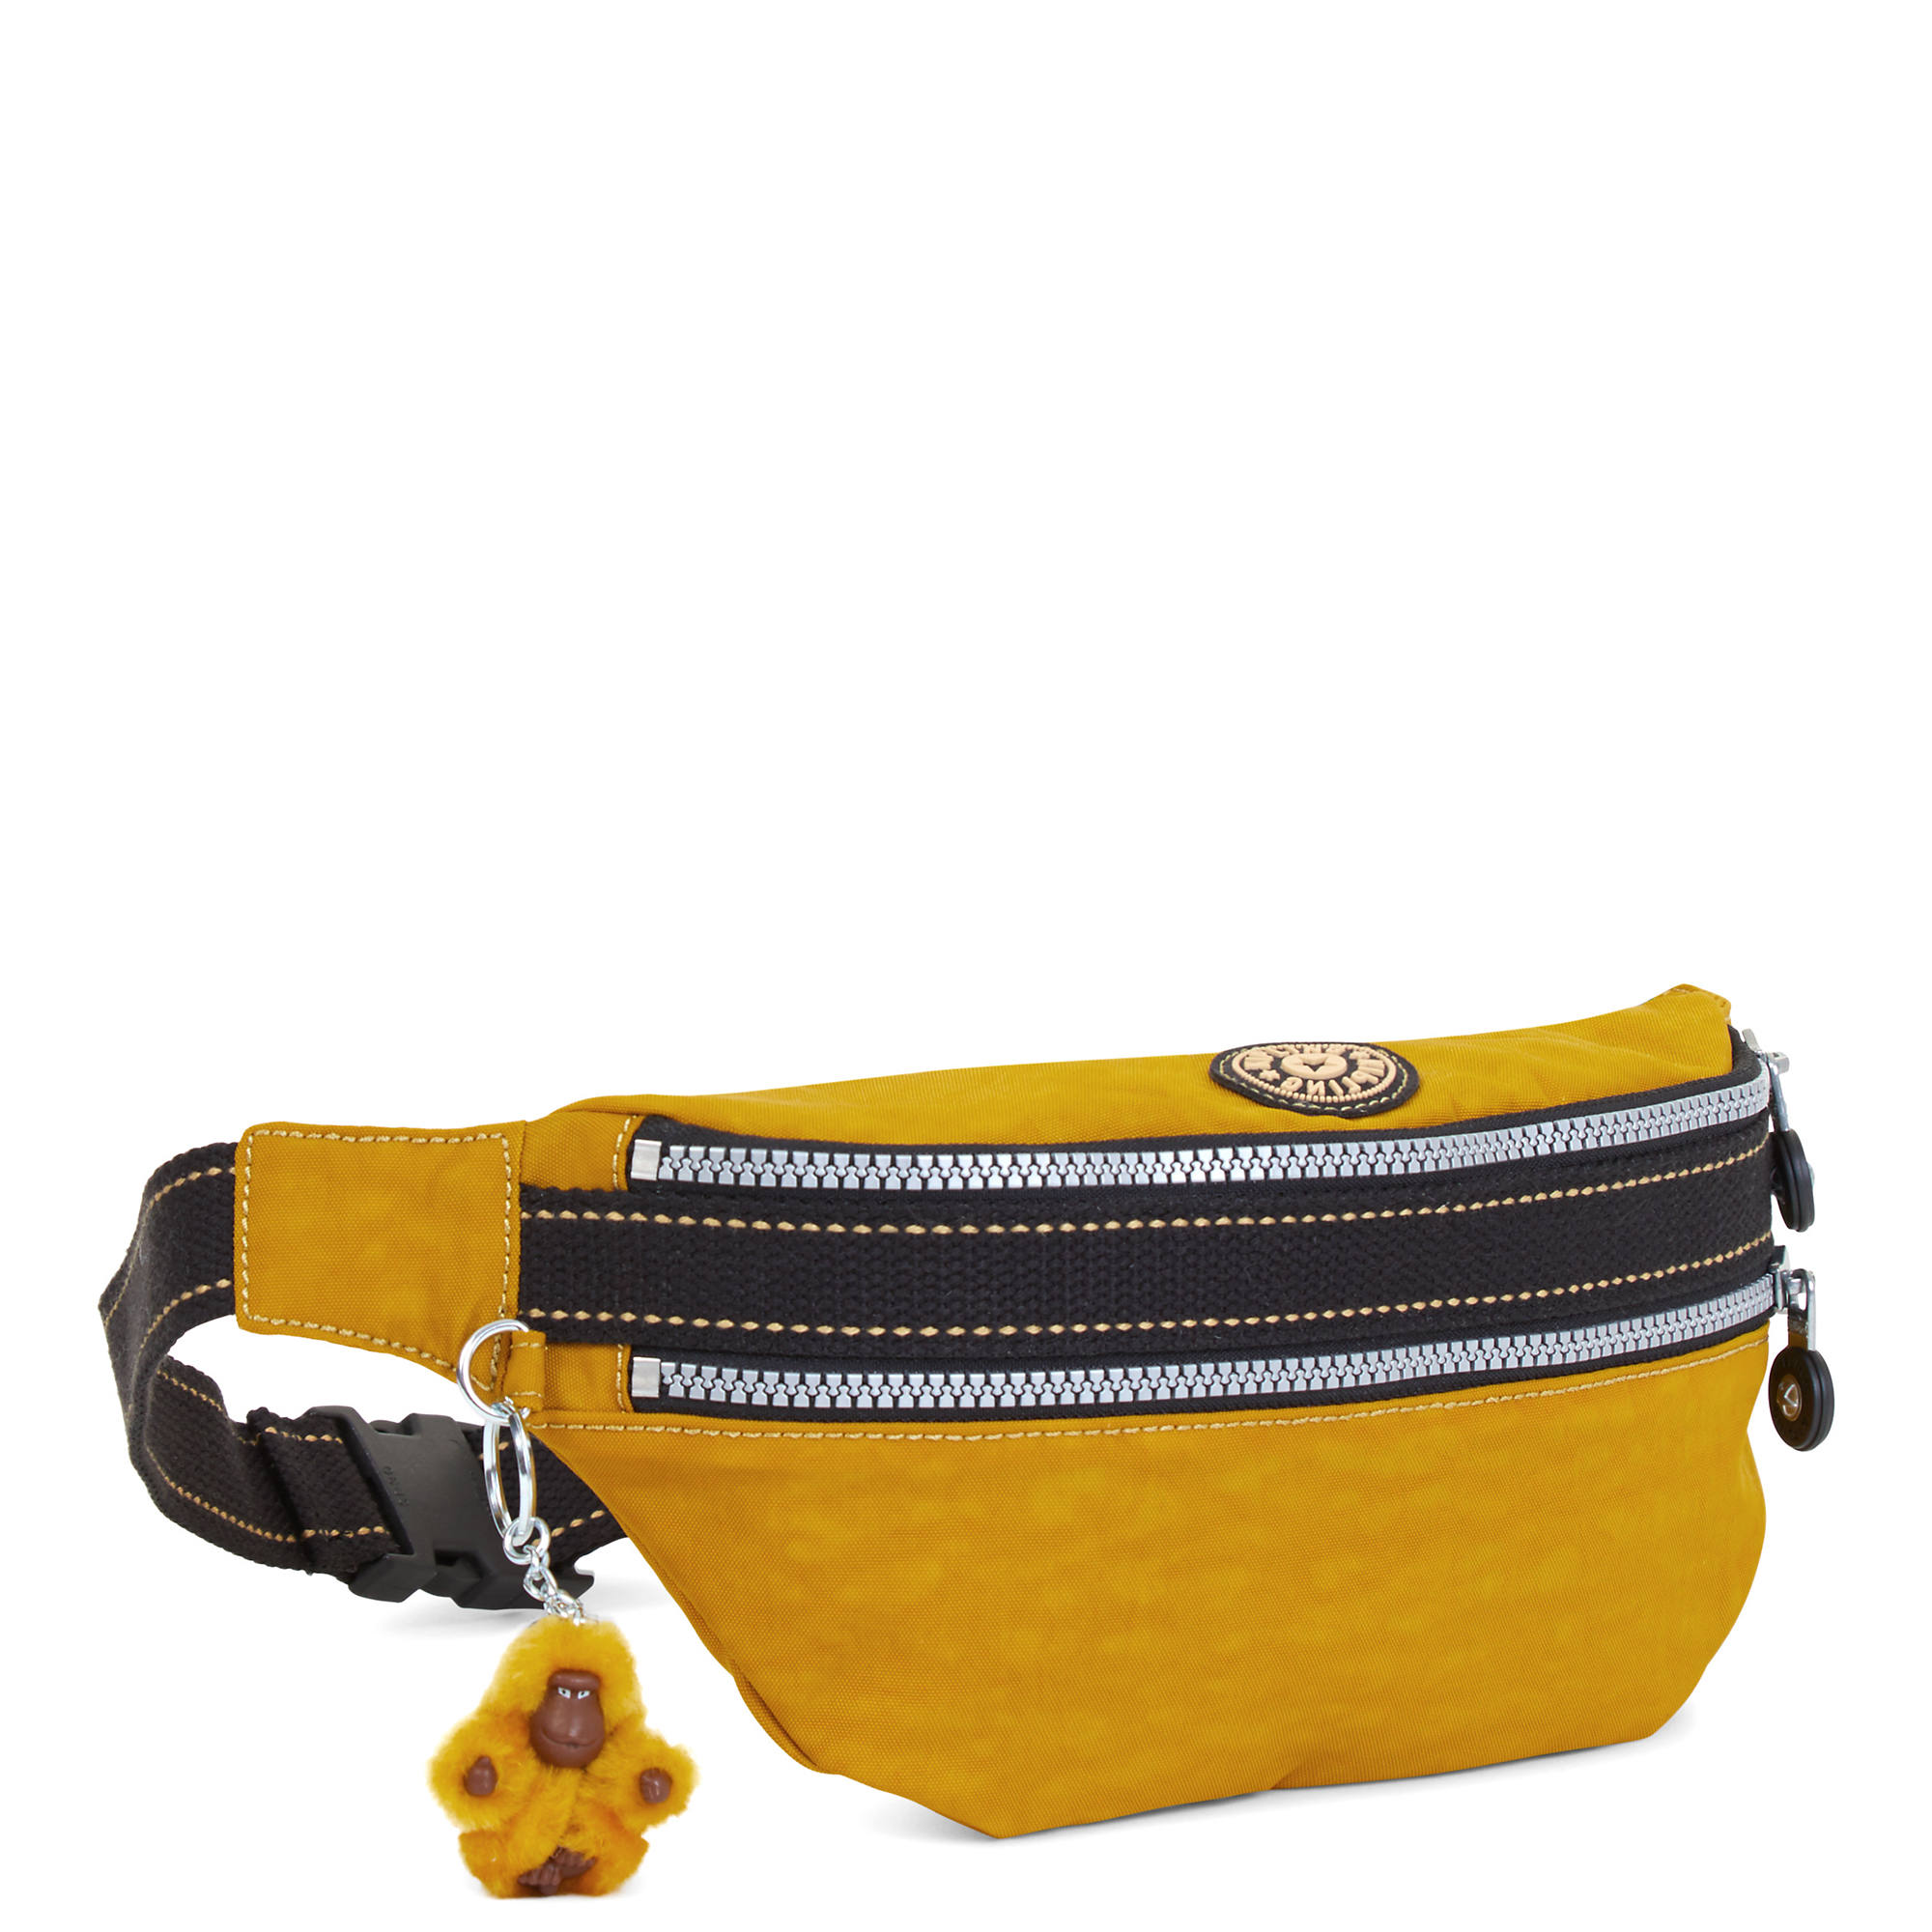 4f70a6b724f Whisper Fanny Pack,Light Year,large